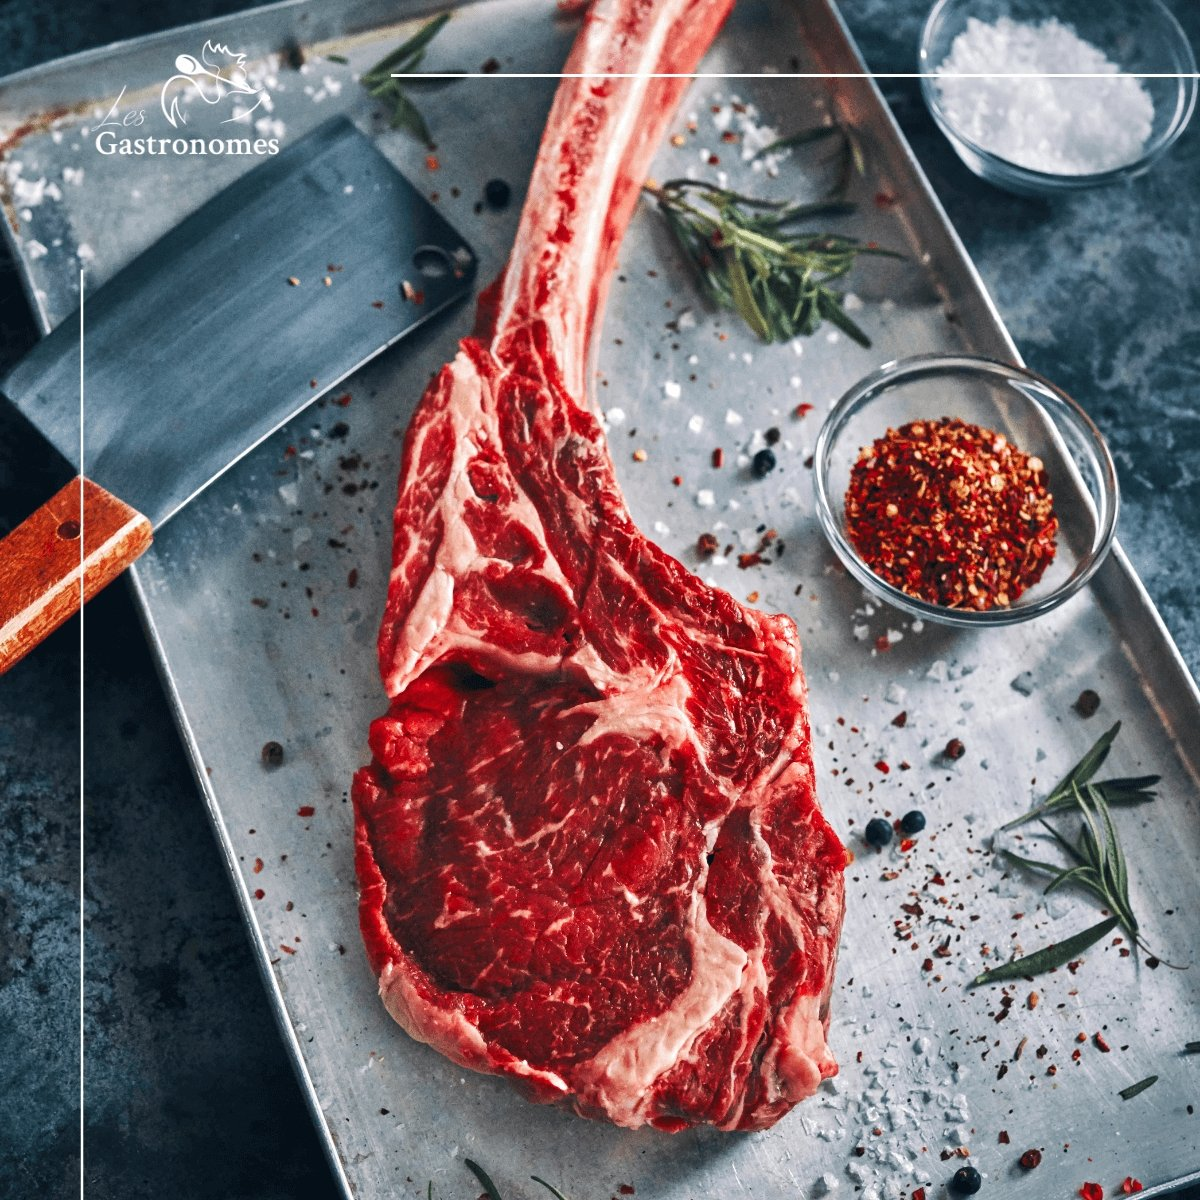 Grass Fed Angus Tomahawk - Les Gastronomes